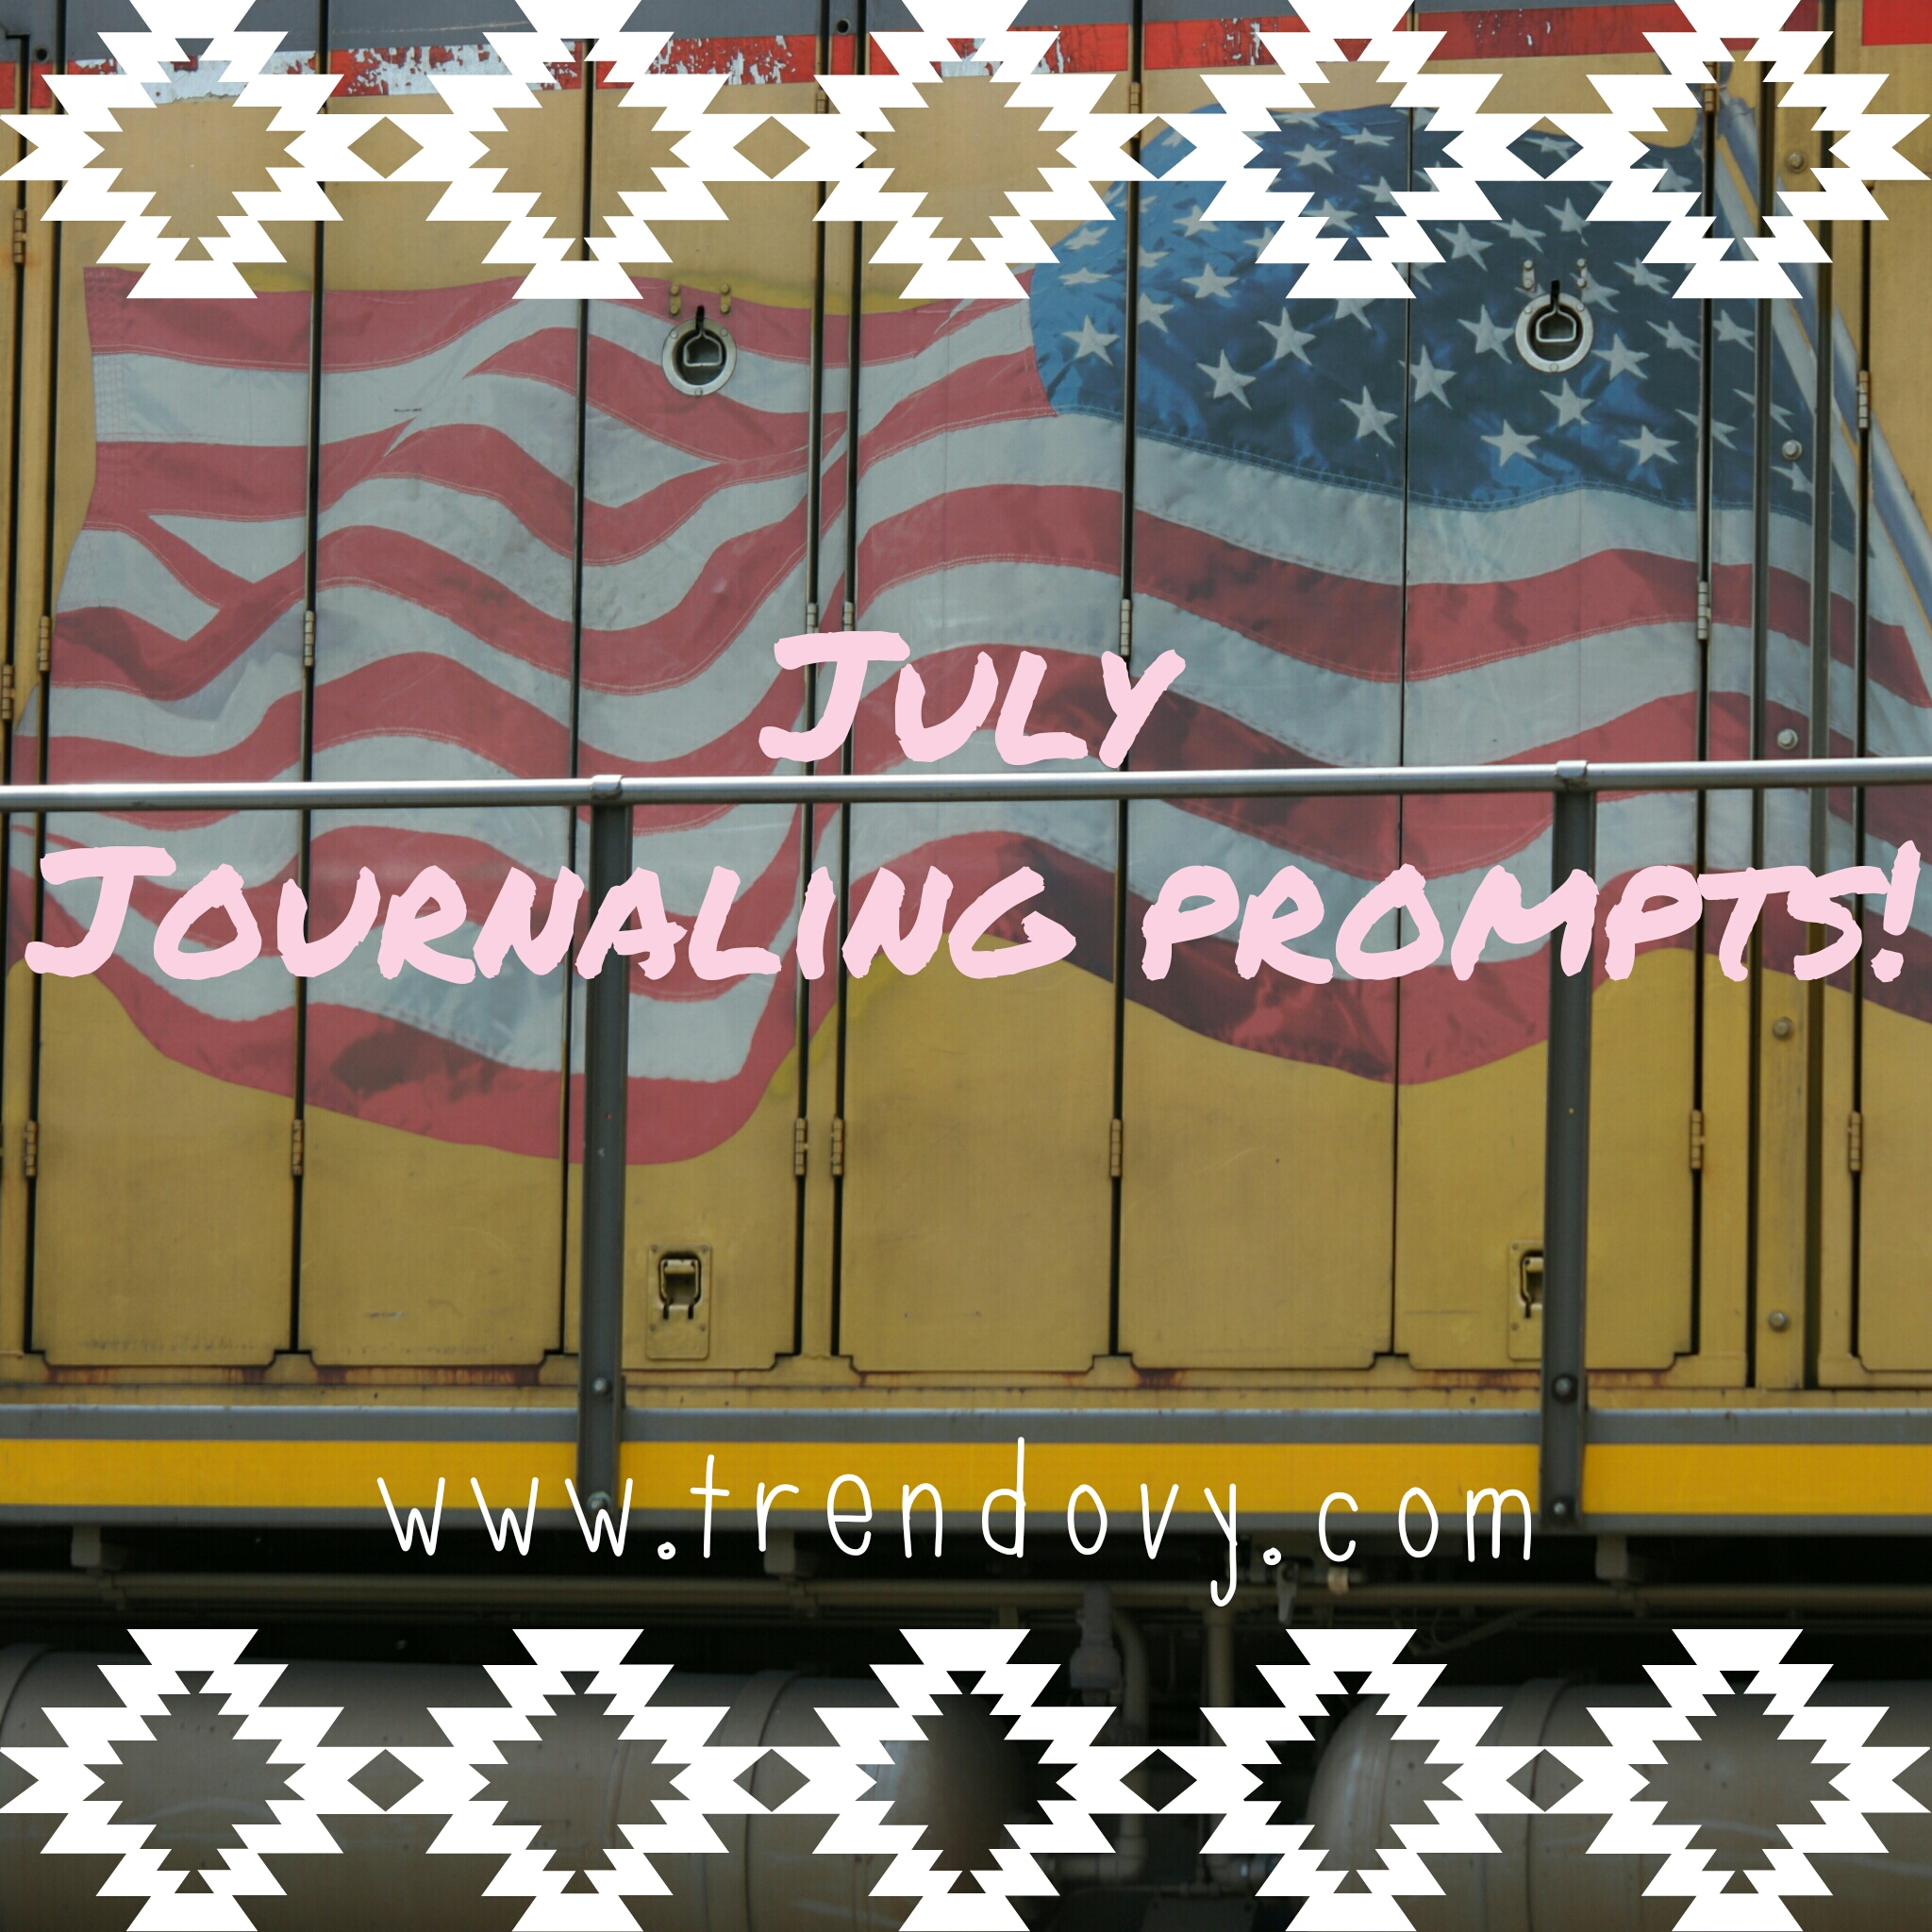 journaling prompts. journal prompts. 31 journal prompts. self-discovery questions. art journaling. bullet journaling. bullet journal. bujo prompts. bujo. journal questions. creative journaling. planner. creative planner